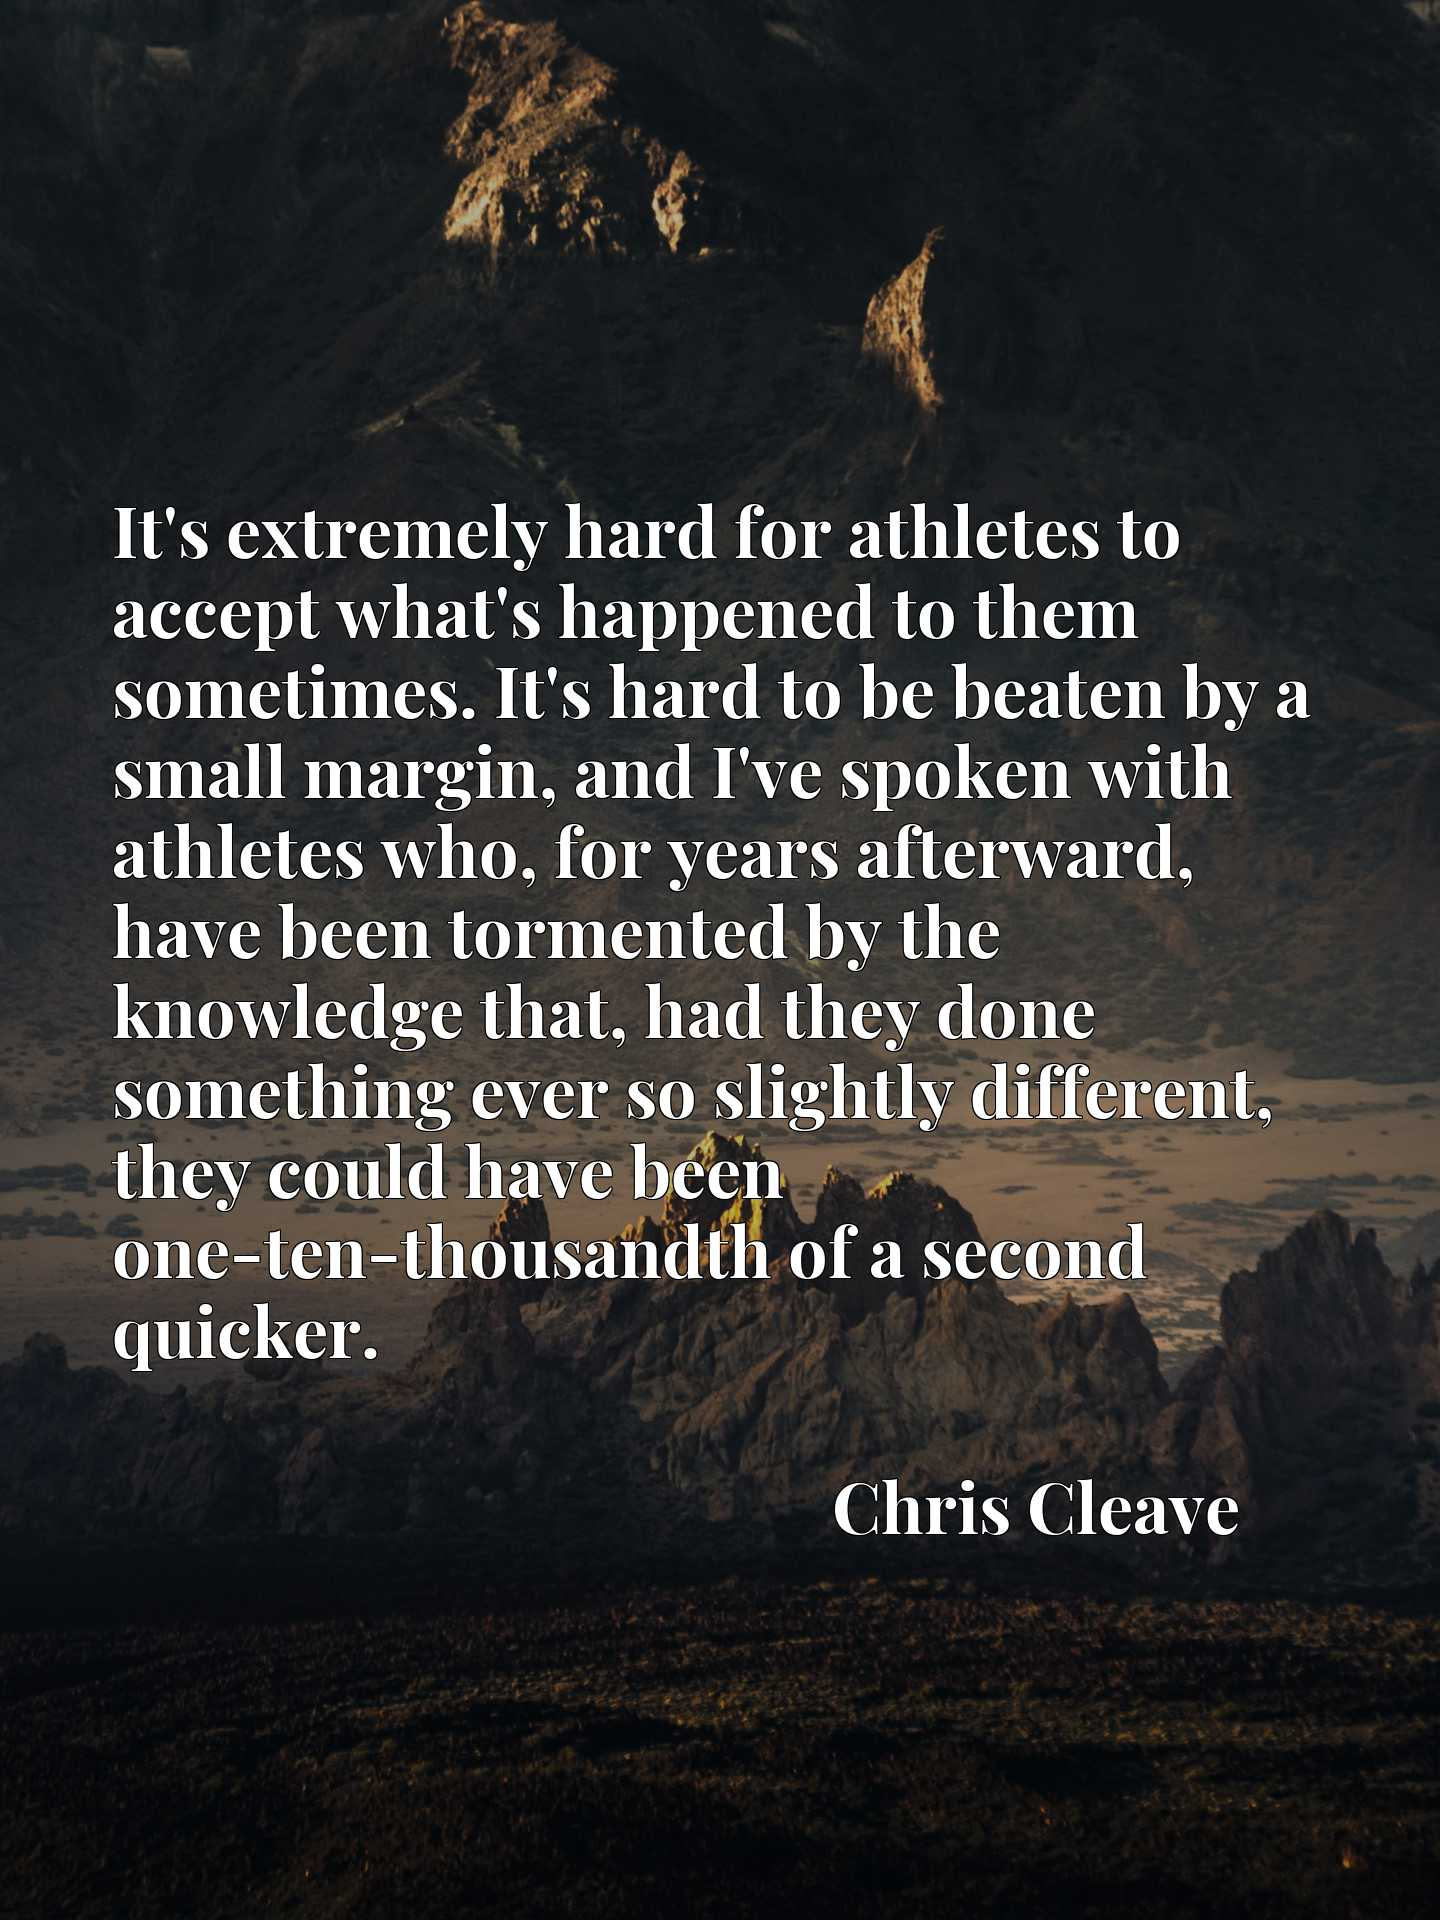 It's extremely hard for athletes to accept what's happened to them sometimes. It's hard to be beaten by a small margin, and I've spoken with athletes who, for years afterward, have been tormented by the knowledge that, had they done something ever so slightly different, they could have been one-ten-thousandth of a second quicker.